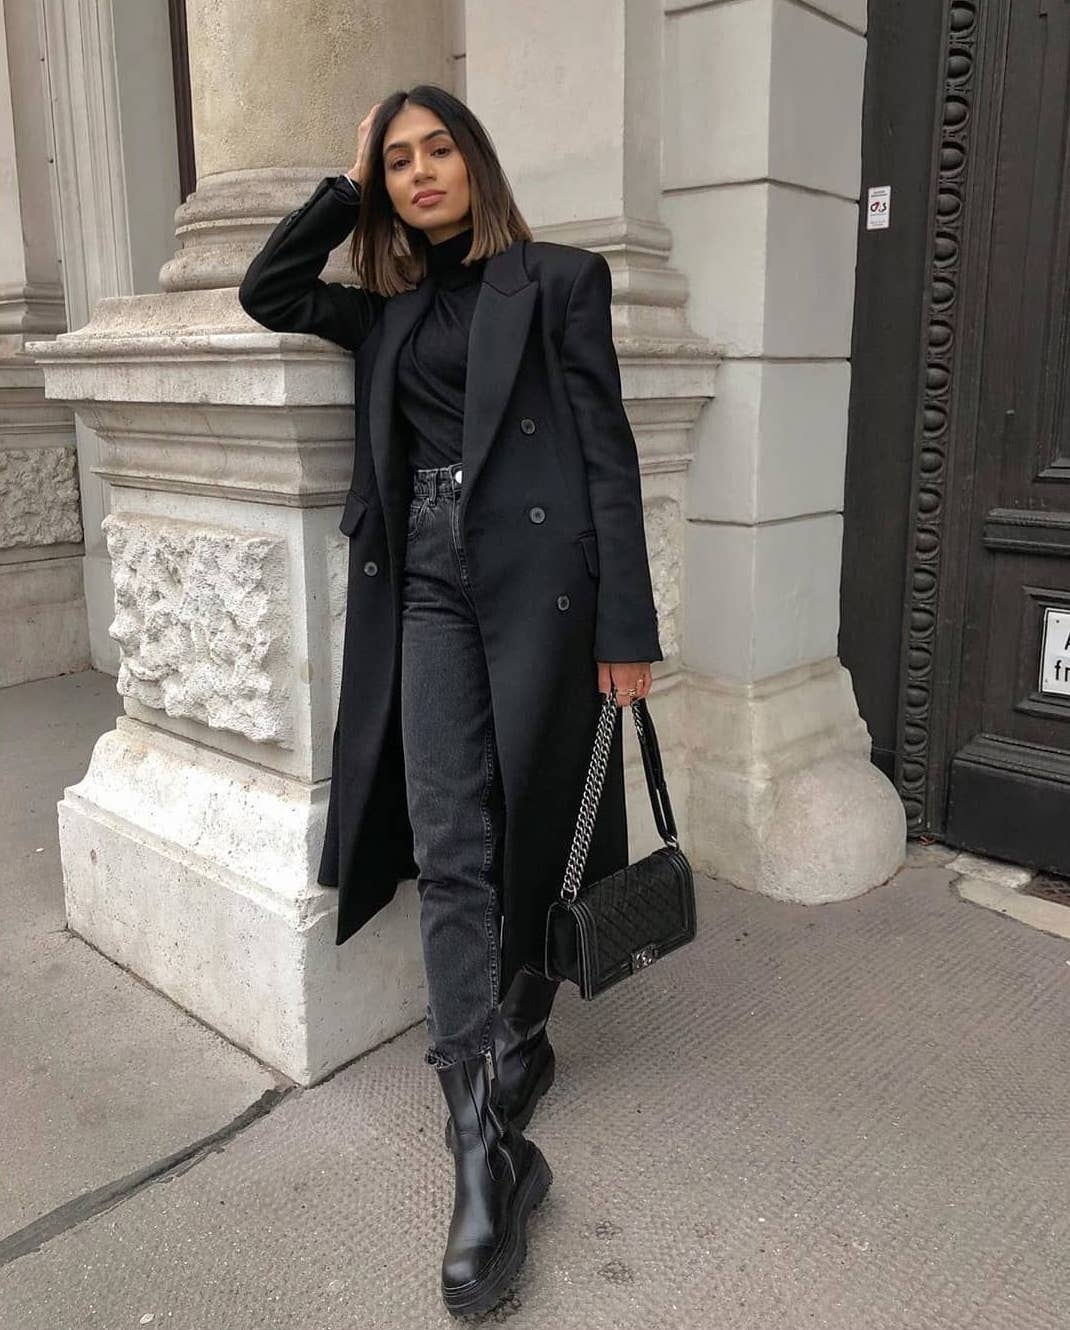 We Love How Chic this All Black Outfit Looks